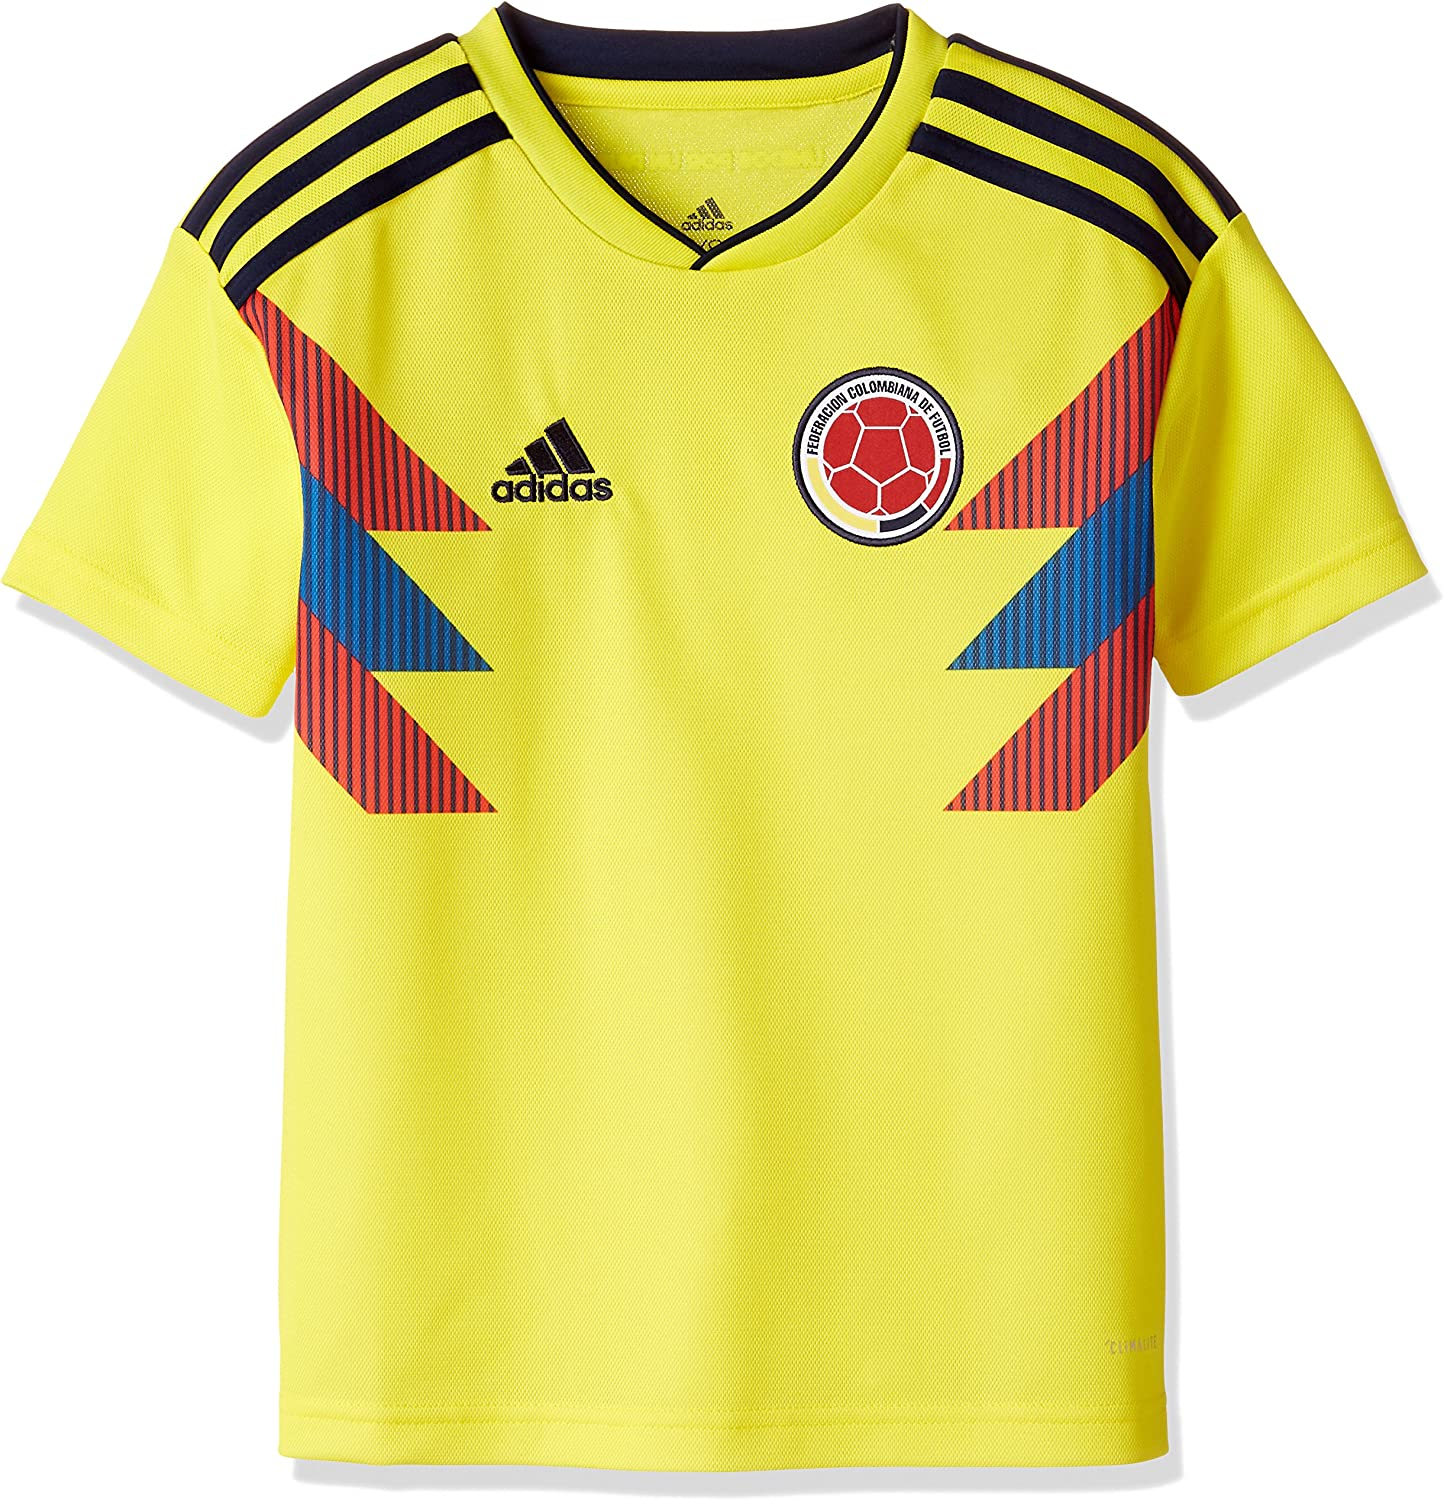 adidas 2018-2019 Colombia Home Football Soccer T-Shirt Jersey (Kids)